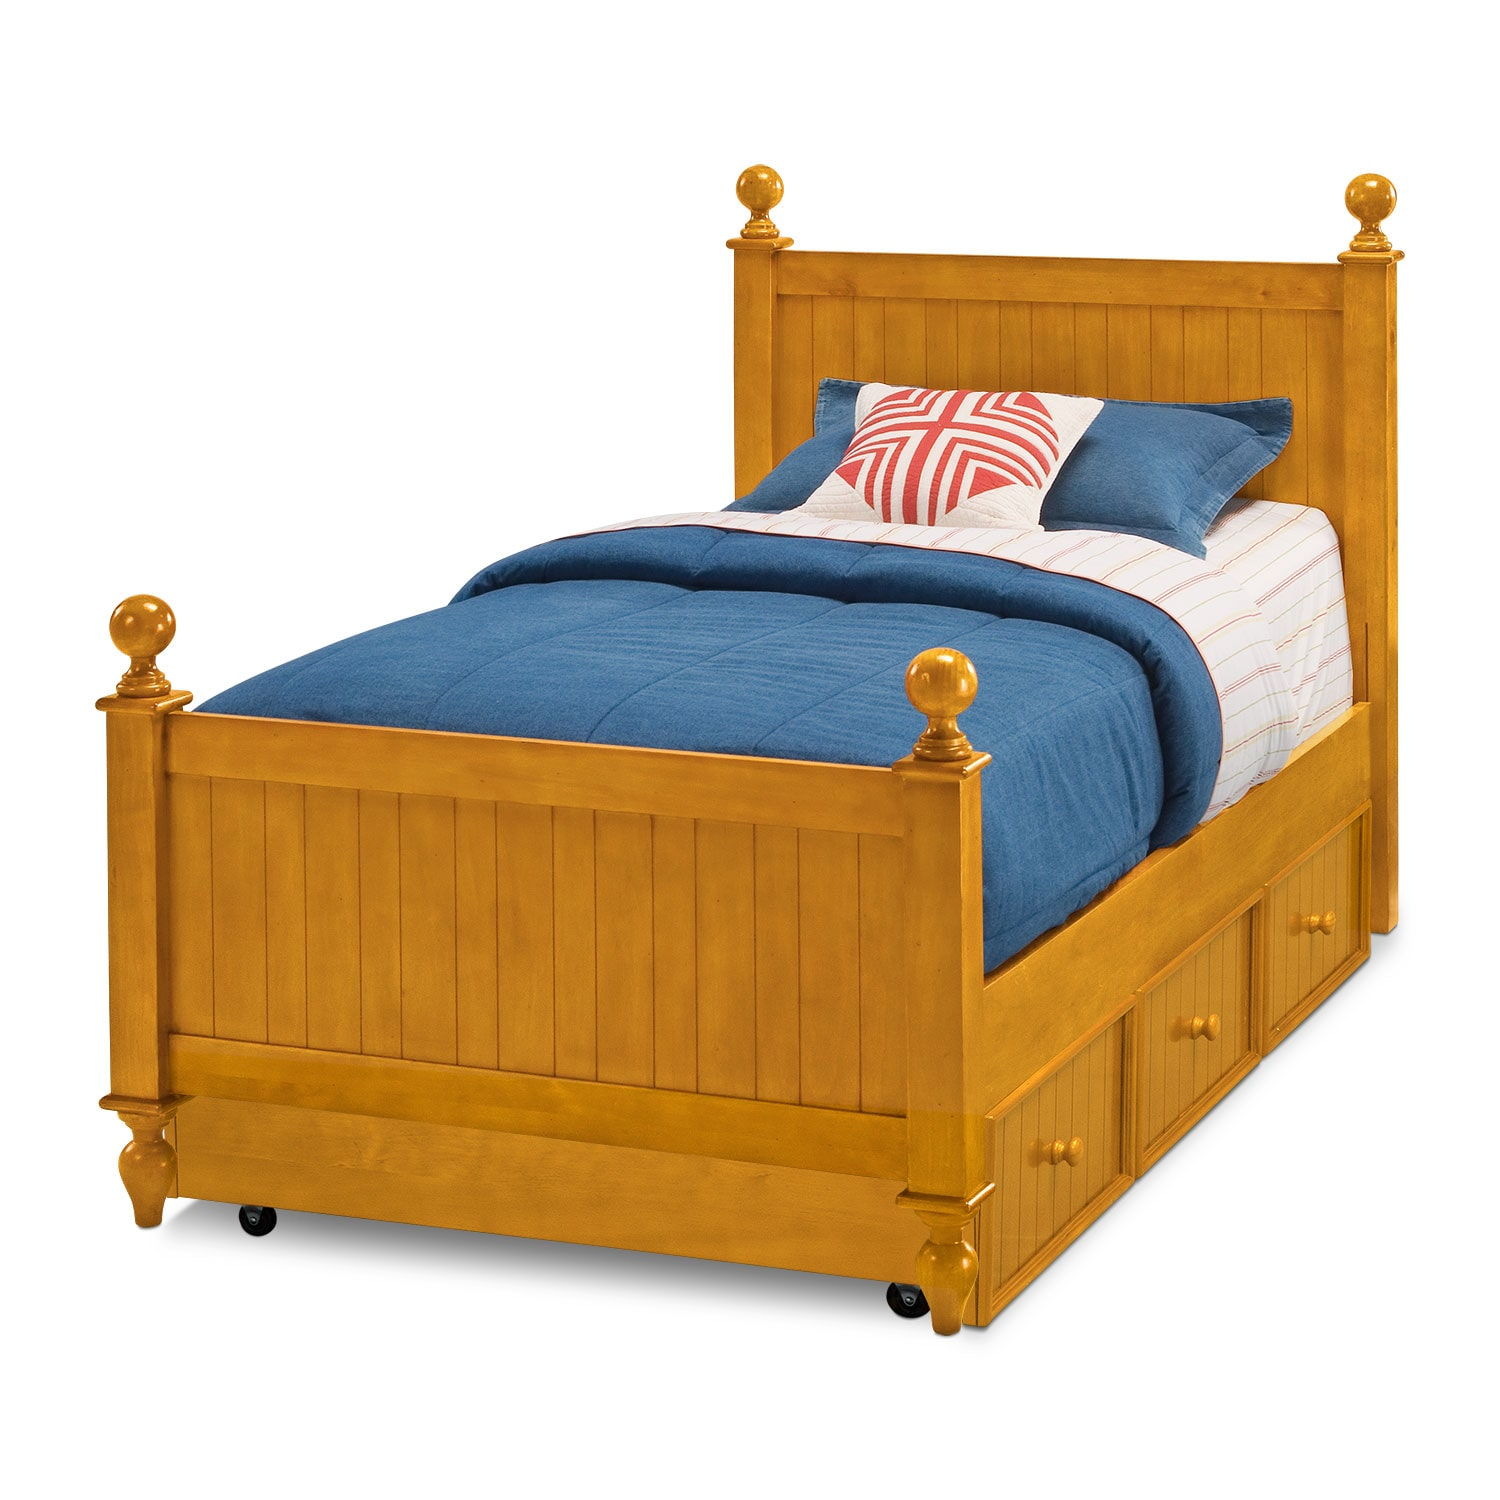 Kids Furniture - Colorworks Trundle Bed